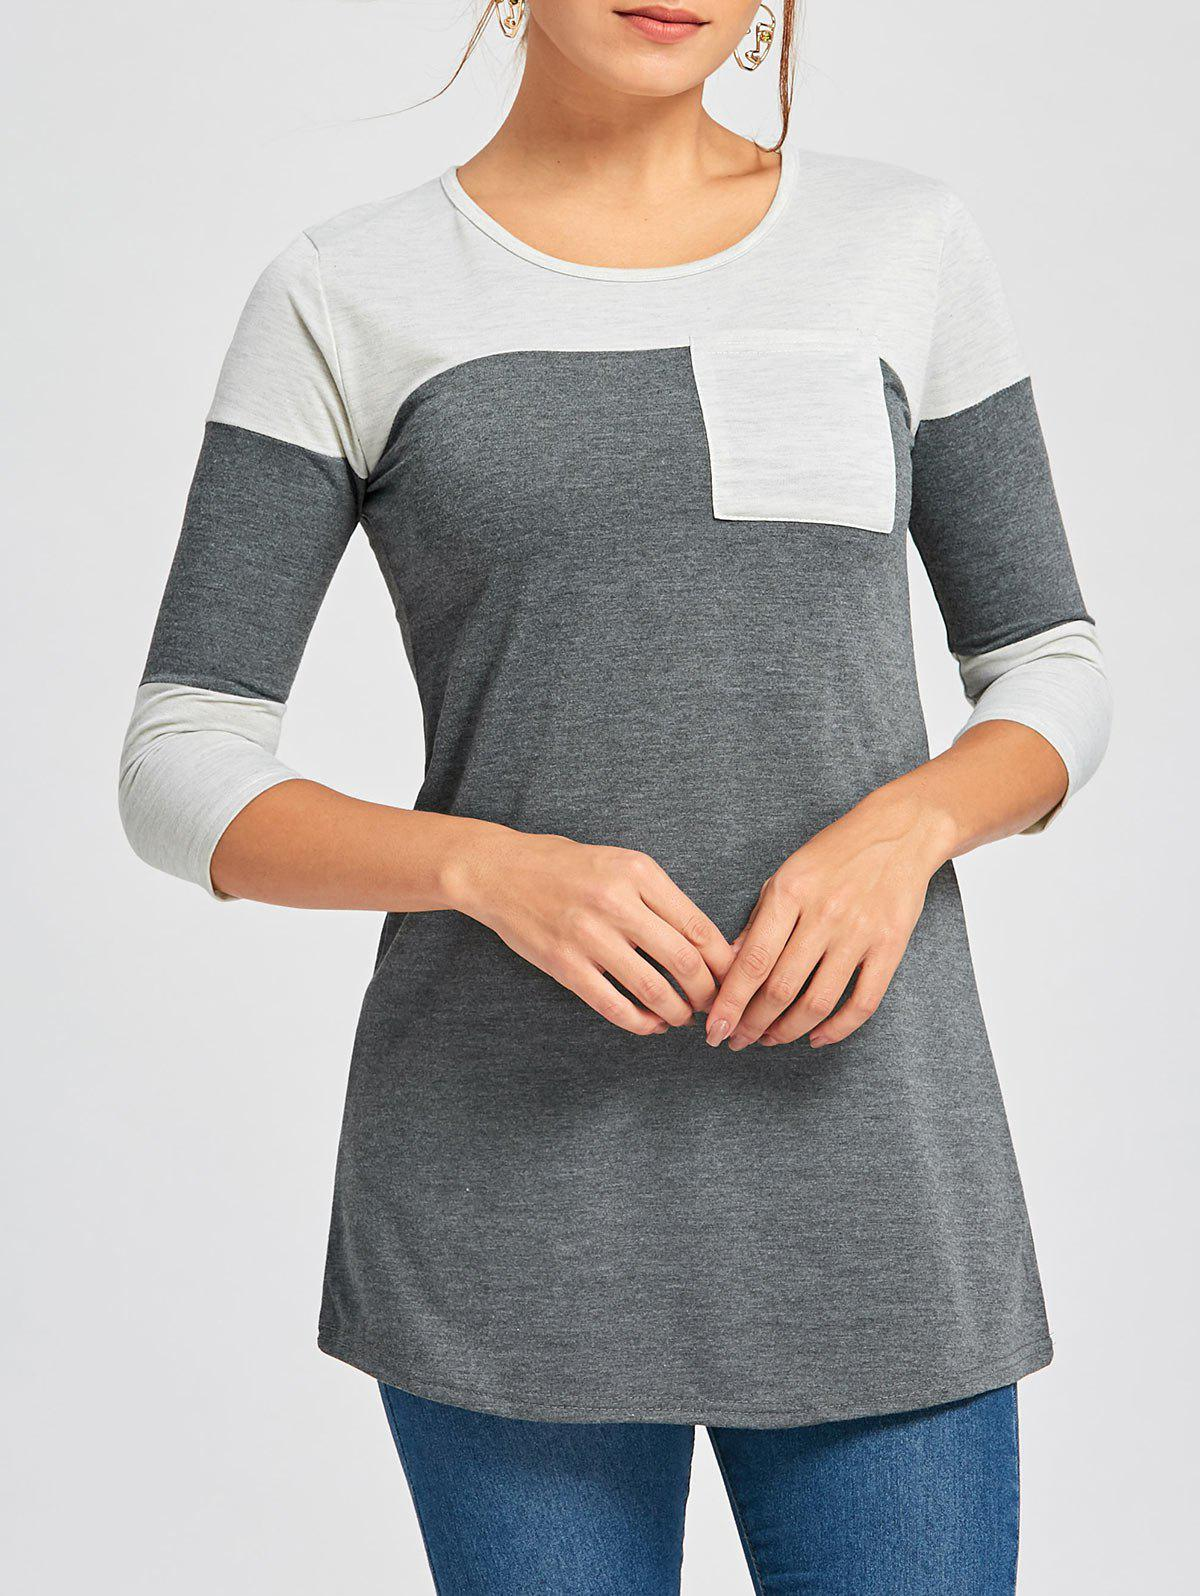 Color Block Tunic T Shirt - DEEP GRAY L